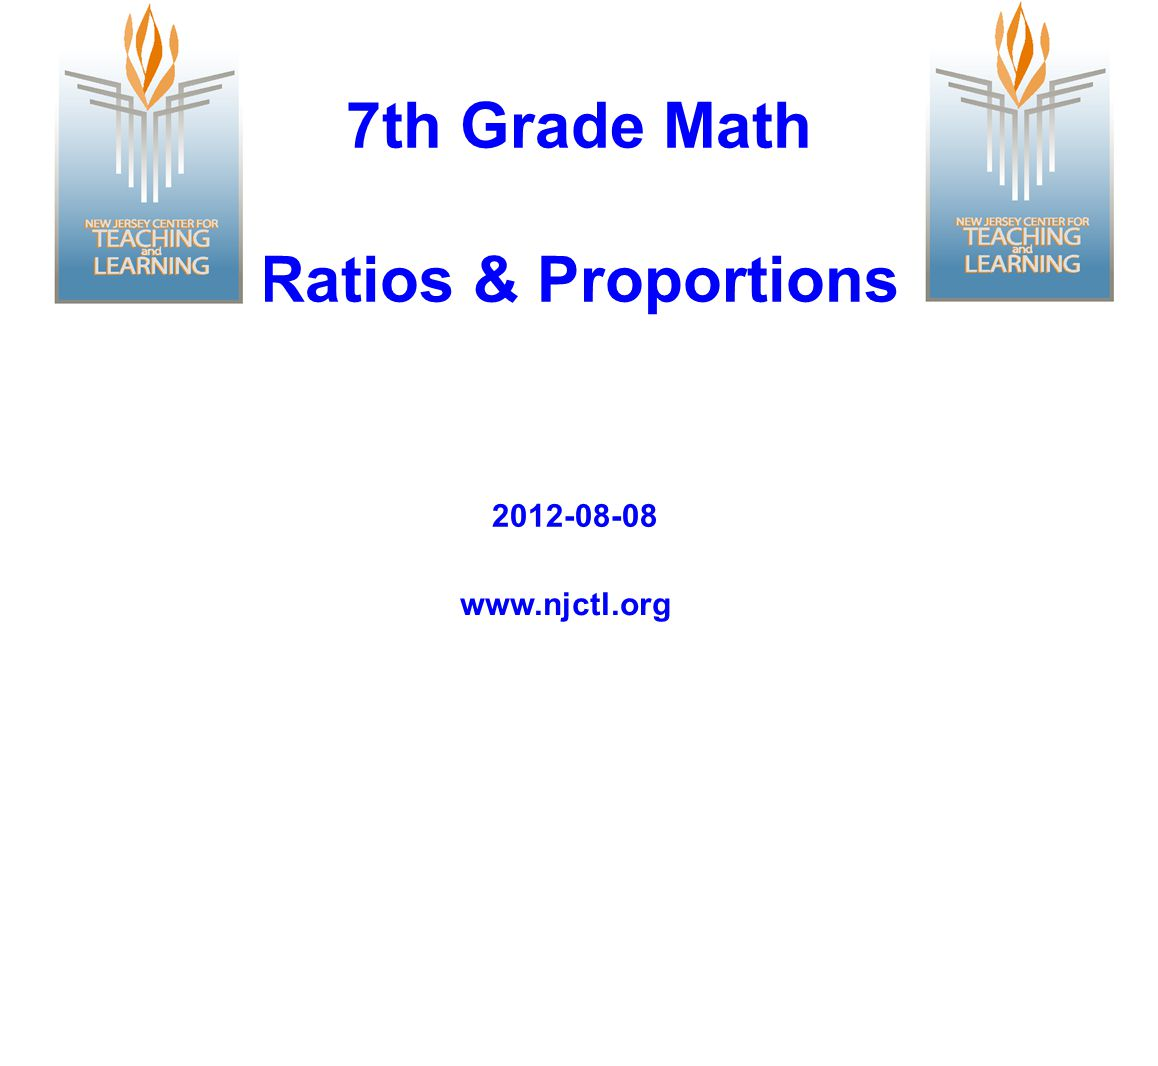 7th Grade Math Ratios & Proportions www.njctl.org 2012-08-08